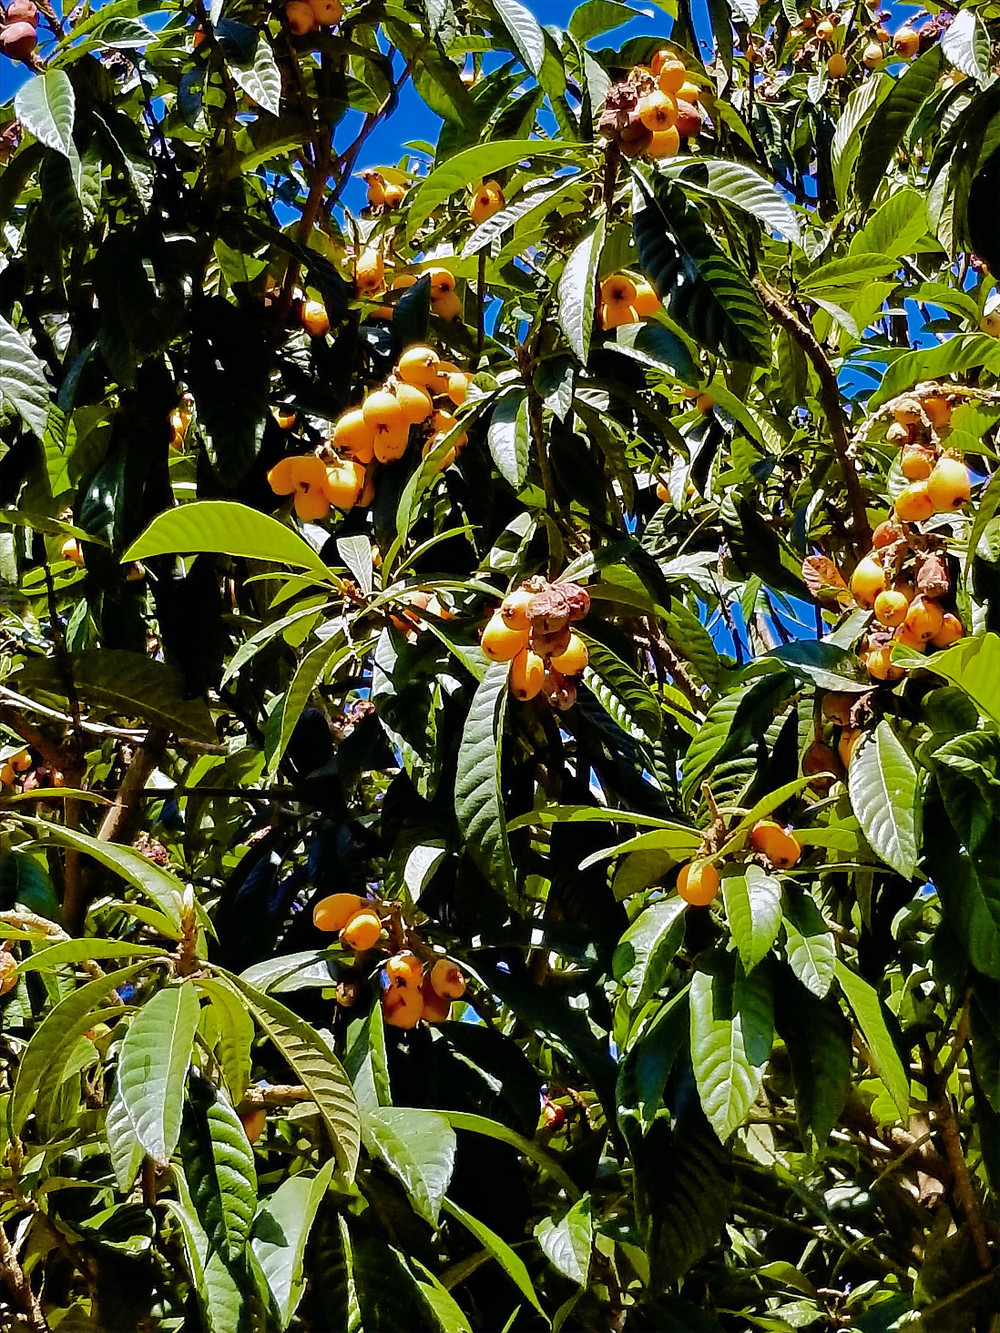 Loquats growing on a tree